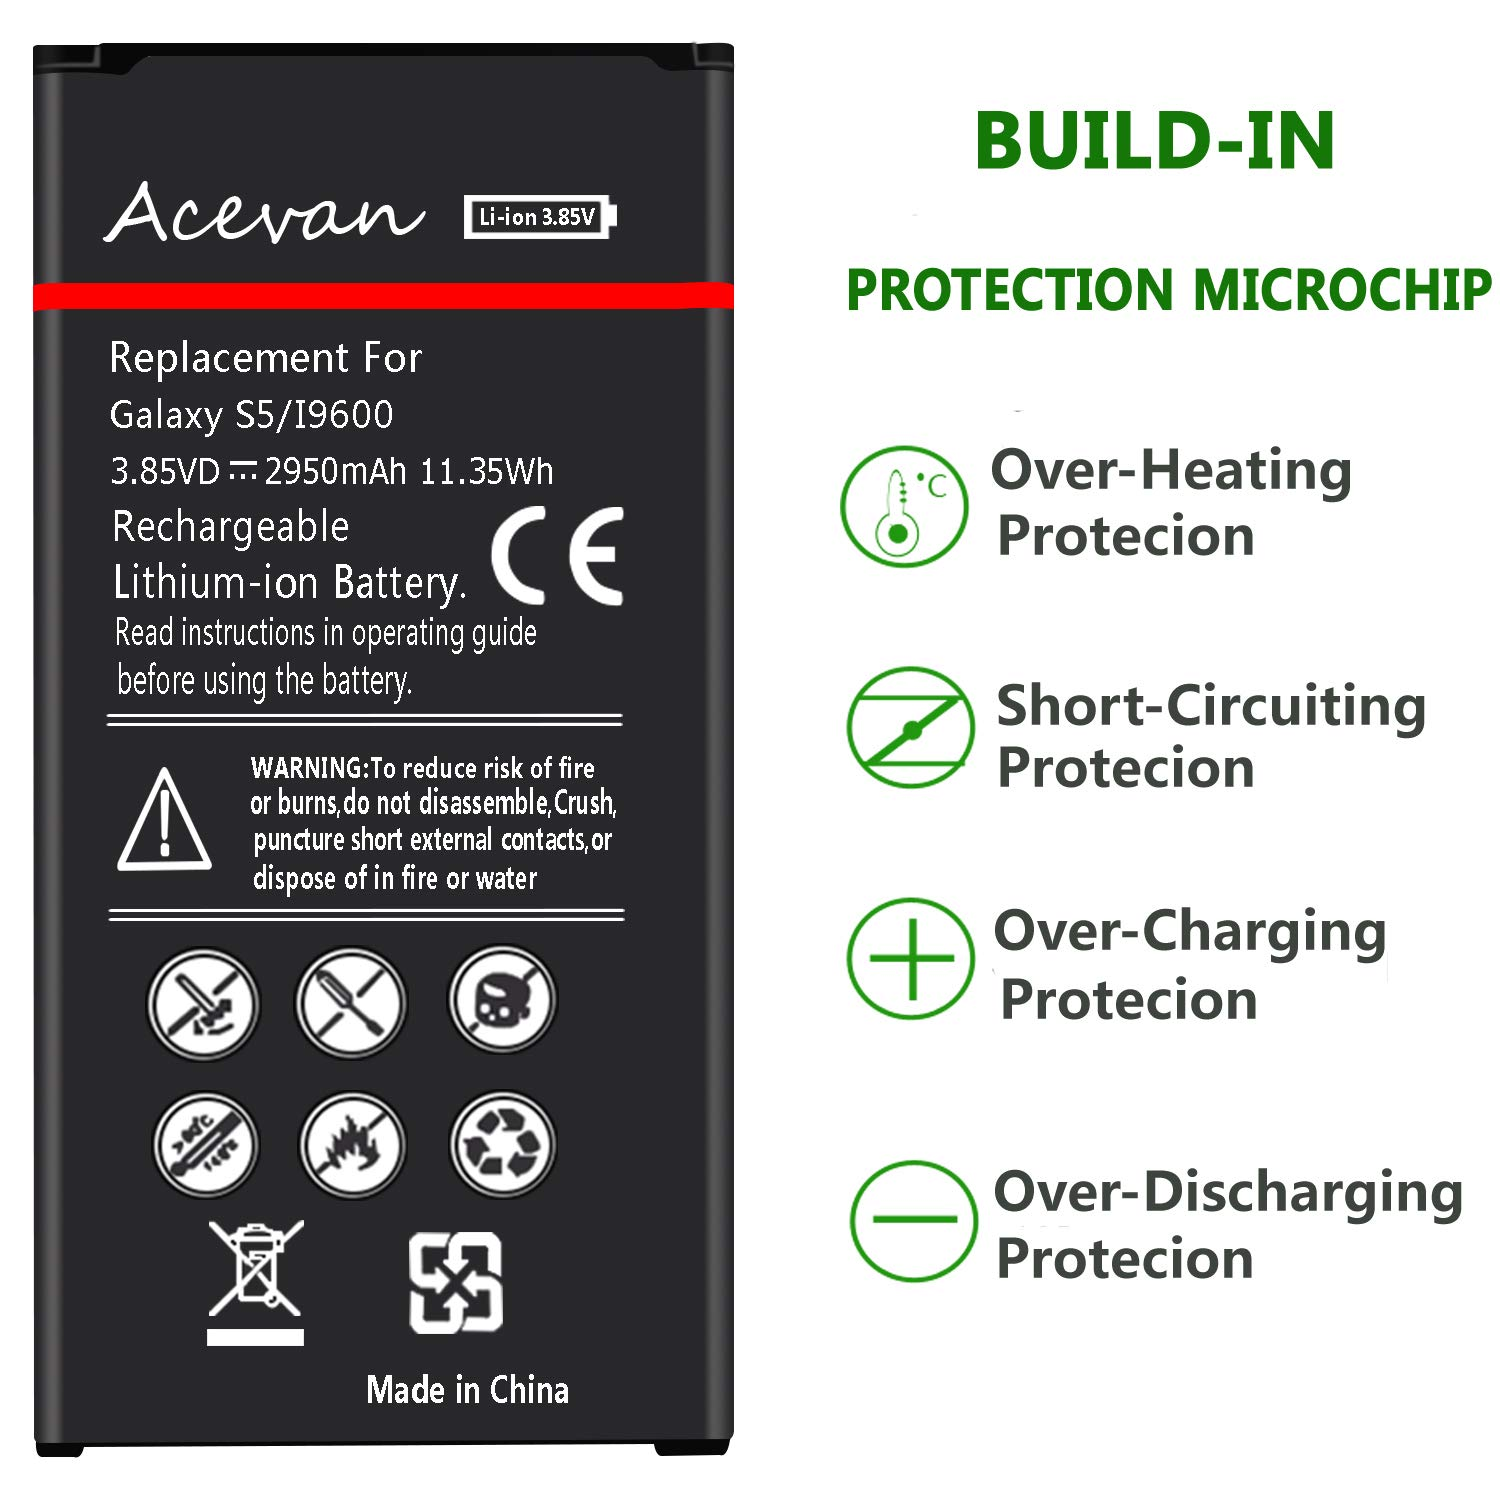 Galaxy S5 Battery Acevan 2950mAh Li-ion Battery Replacement for Samsung Galaxy S5, Verizon G900V, Sprint G900P, T-Mobile G900T, AT&T G900A, G900F, G900H, G900R4, I9600 [3 Year Warranty] by Acevan (Image #5)